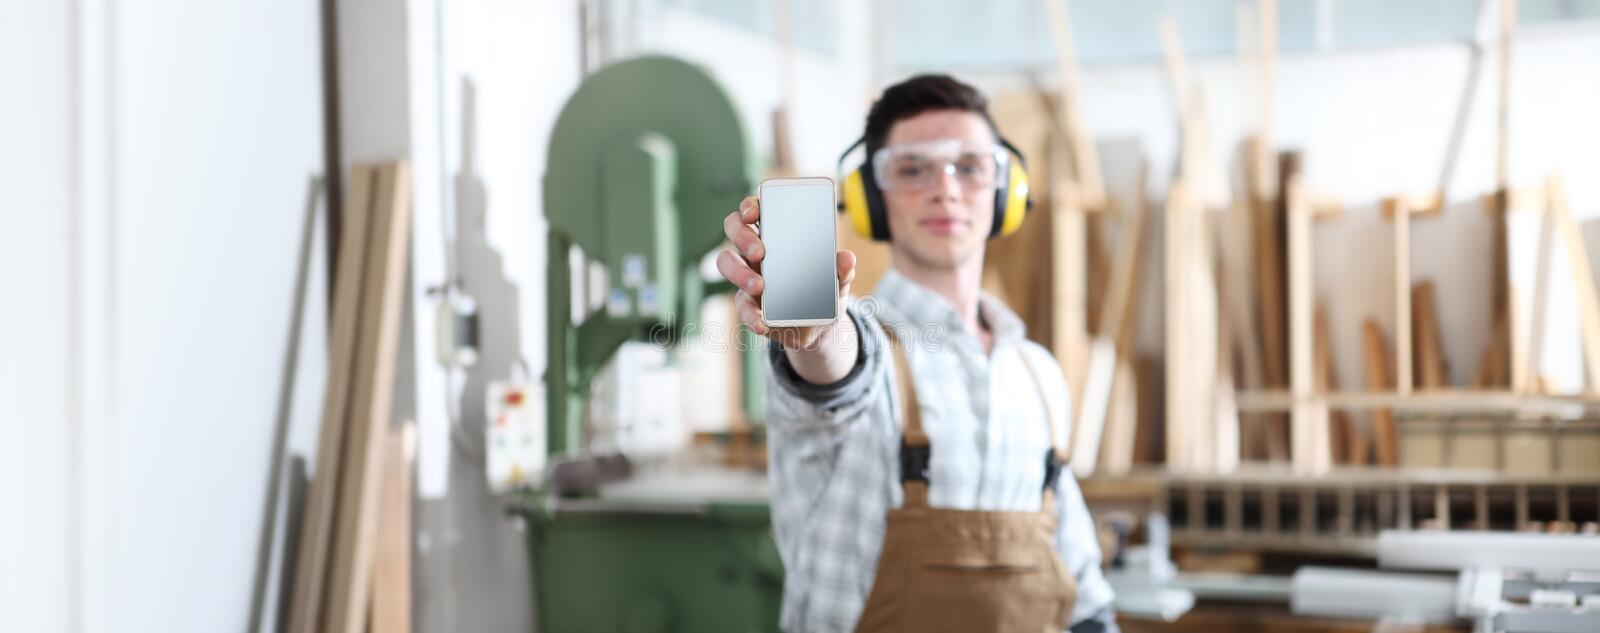 Carpenter man show the mobile phone isolated on carpentry background royalty free stock images